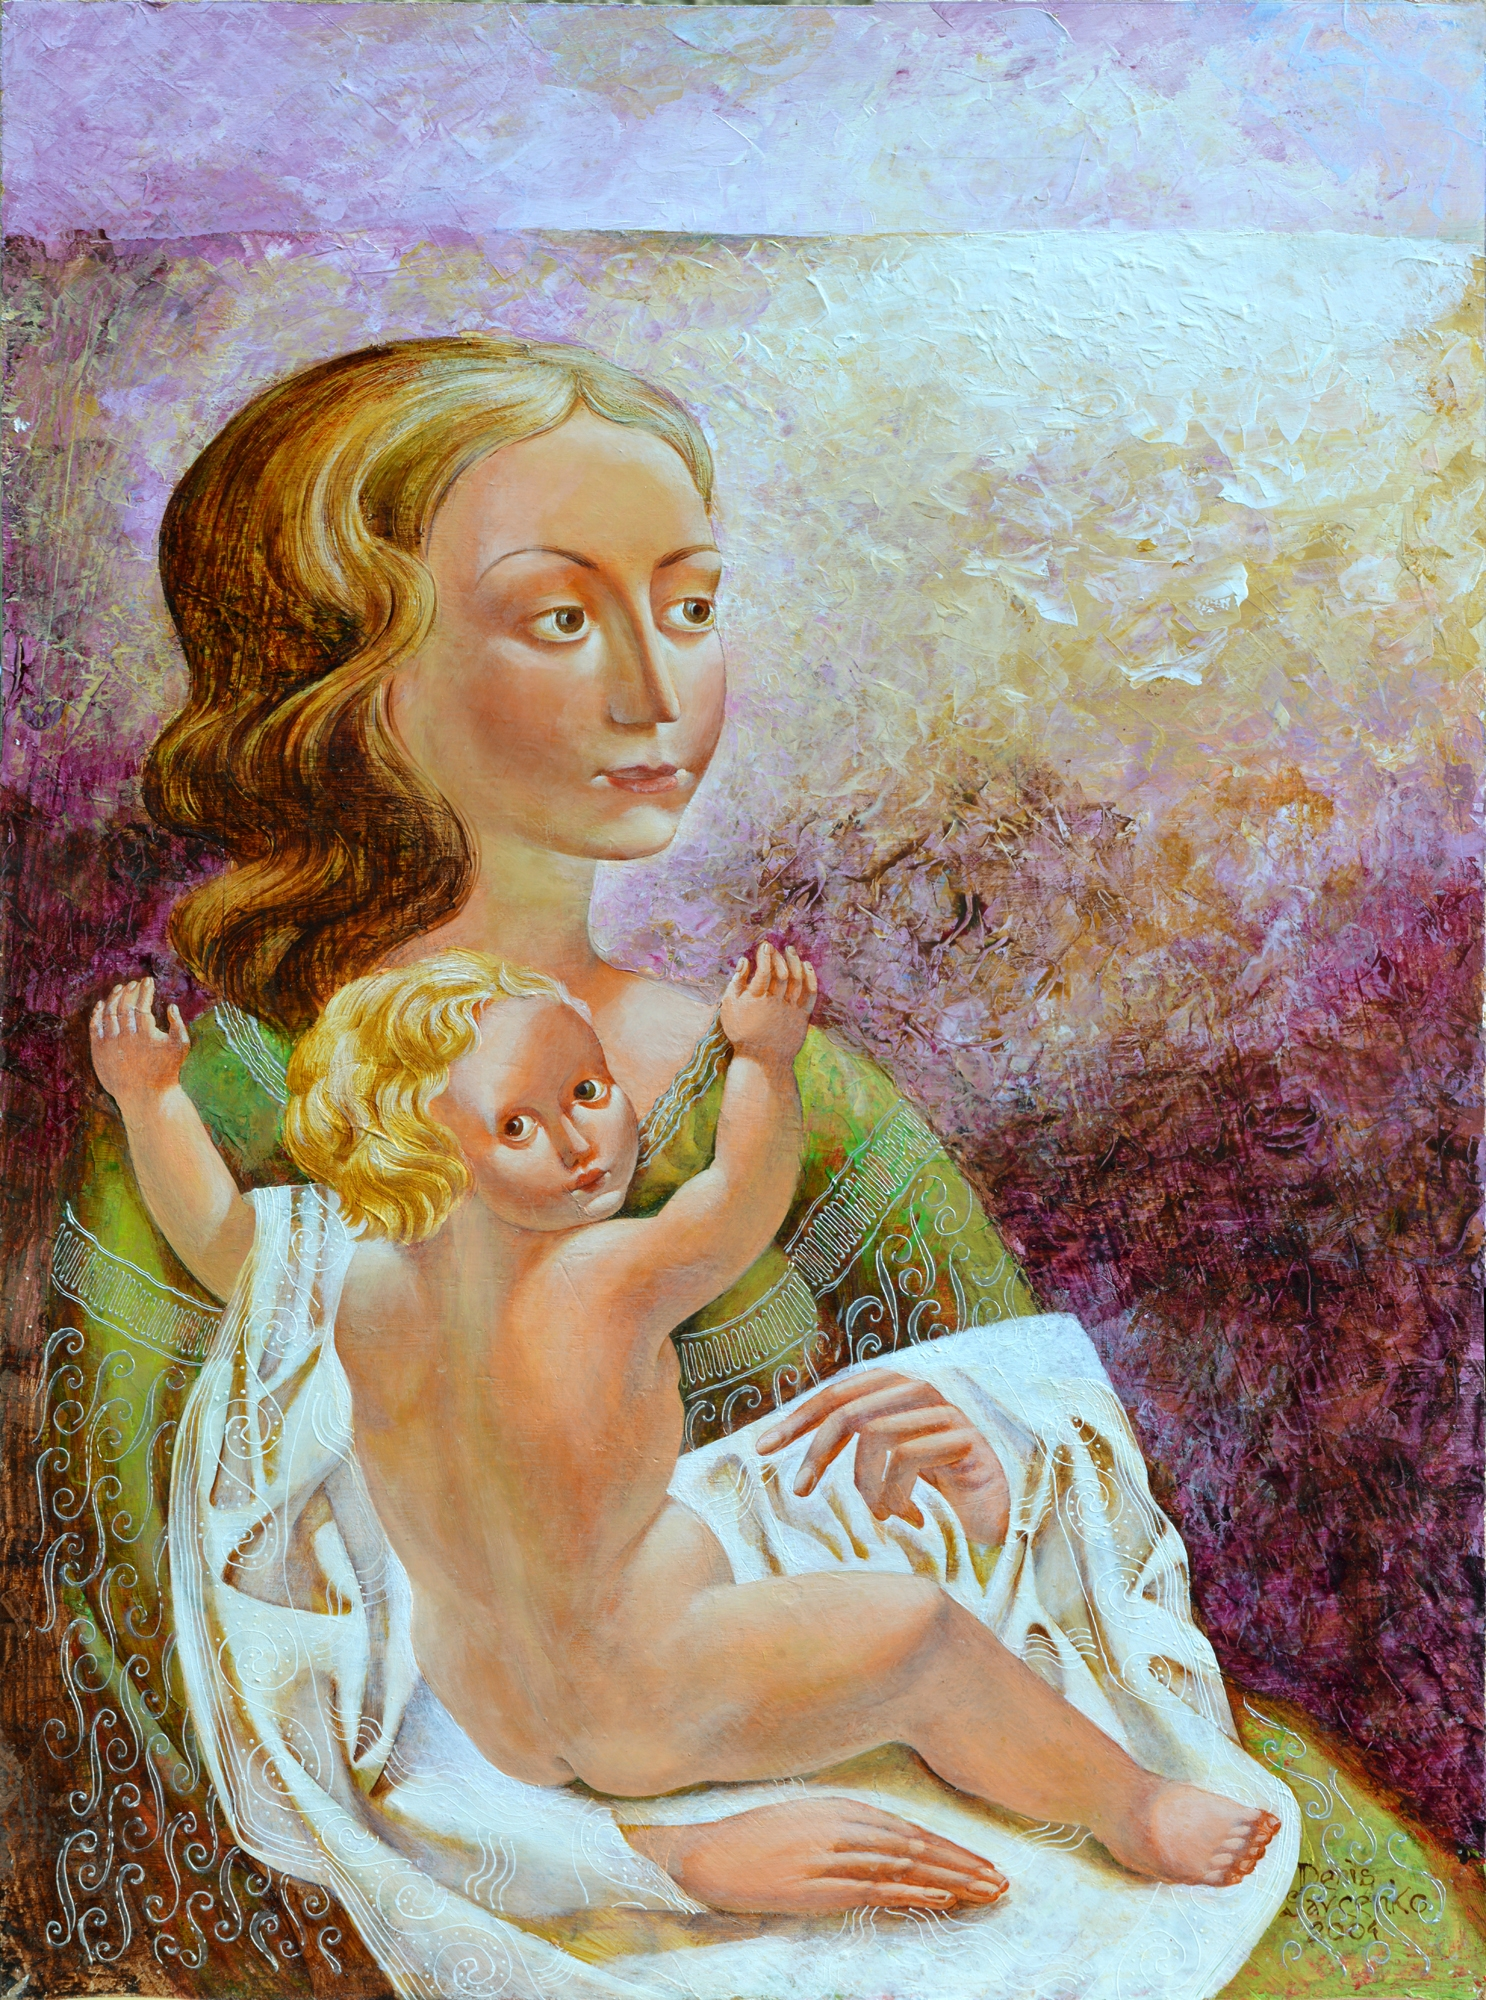 Denys Savchenko. Acrylic painting. 2004. Mother. Acrylic on wooden board. 56x40 cm.